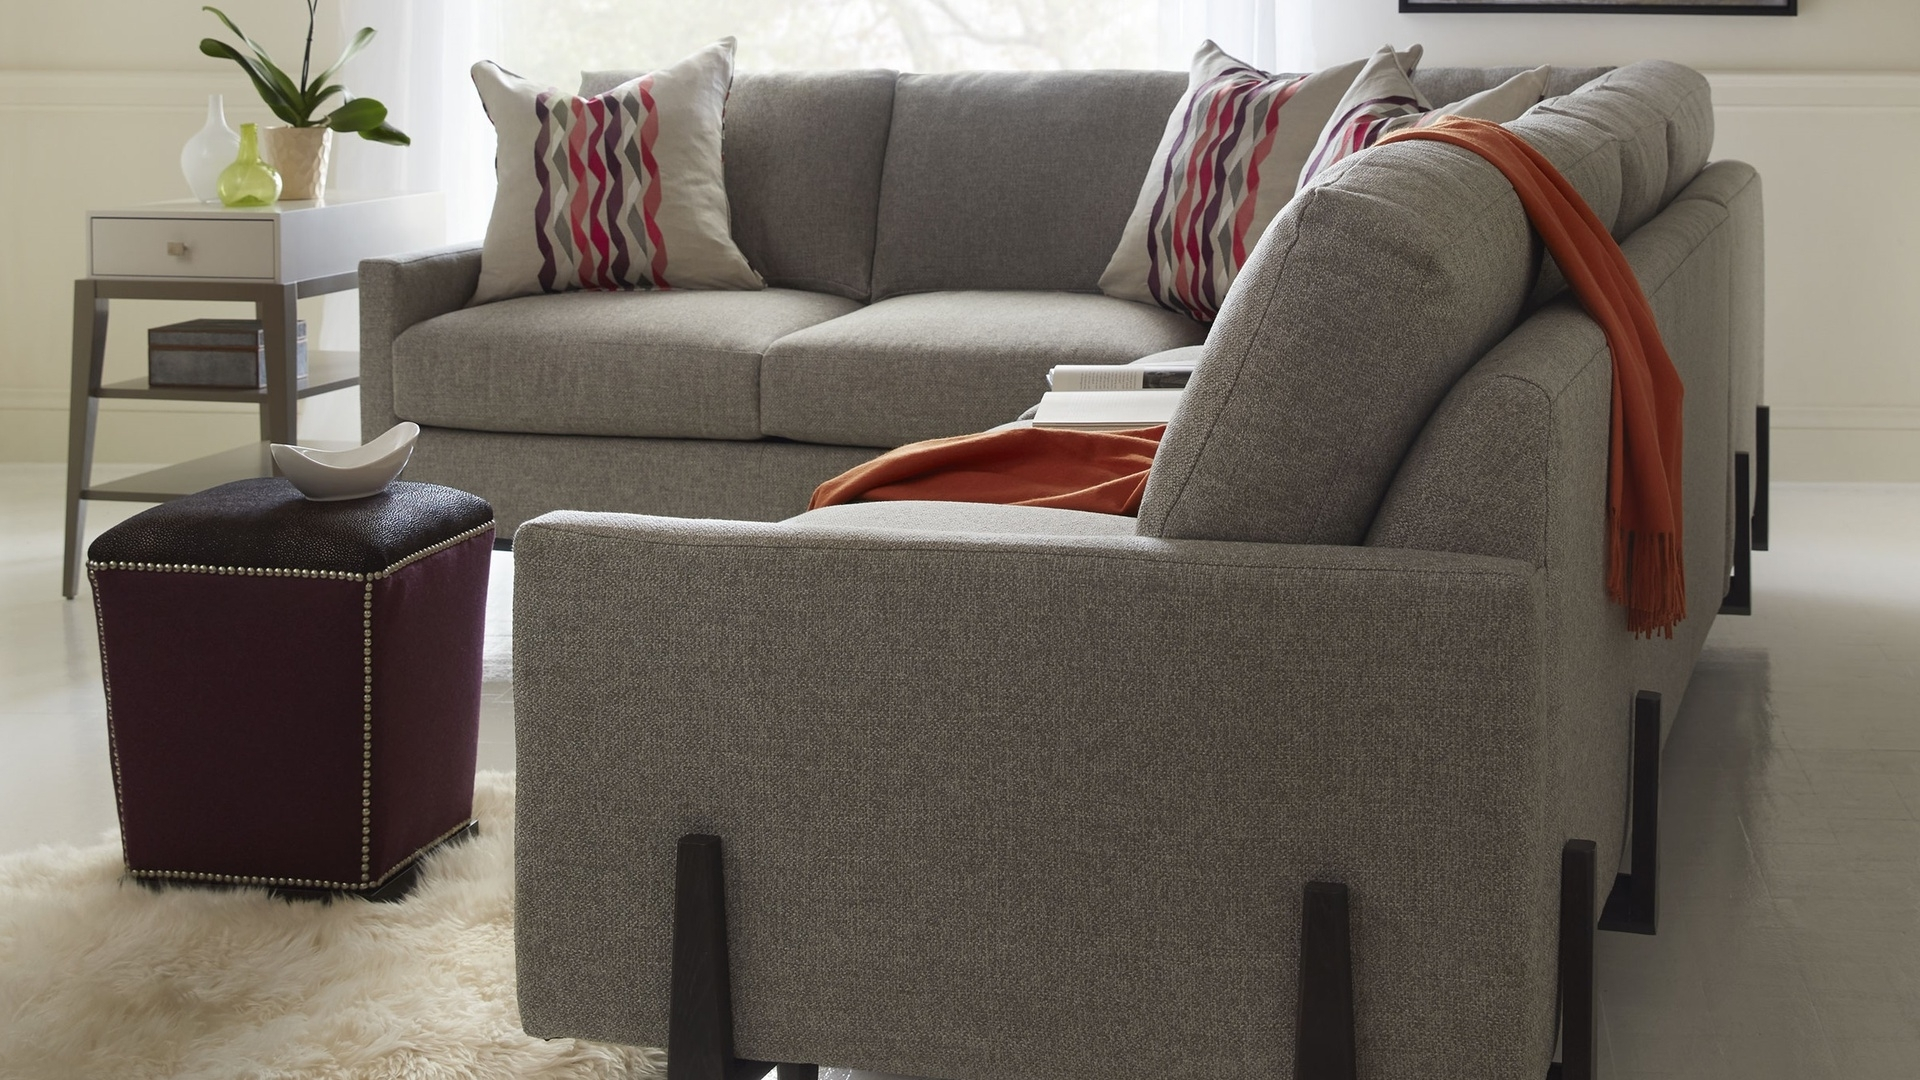 Stanford Furniture Intended For Most Current Made In North Carolina Sectional Sofas (View 18 of 20)